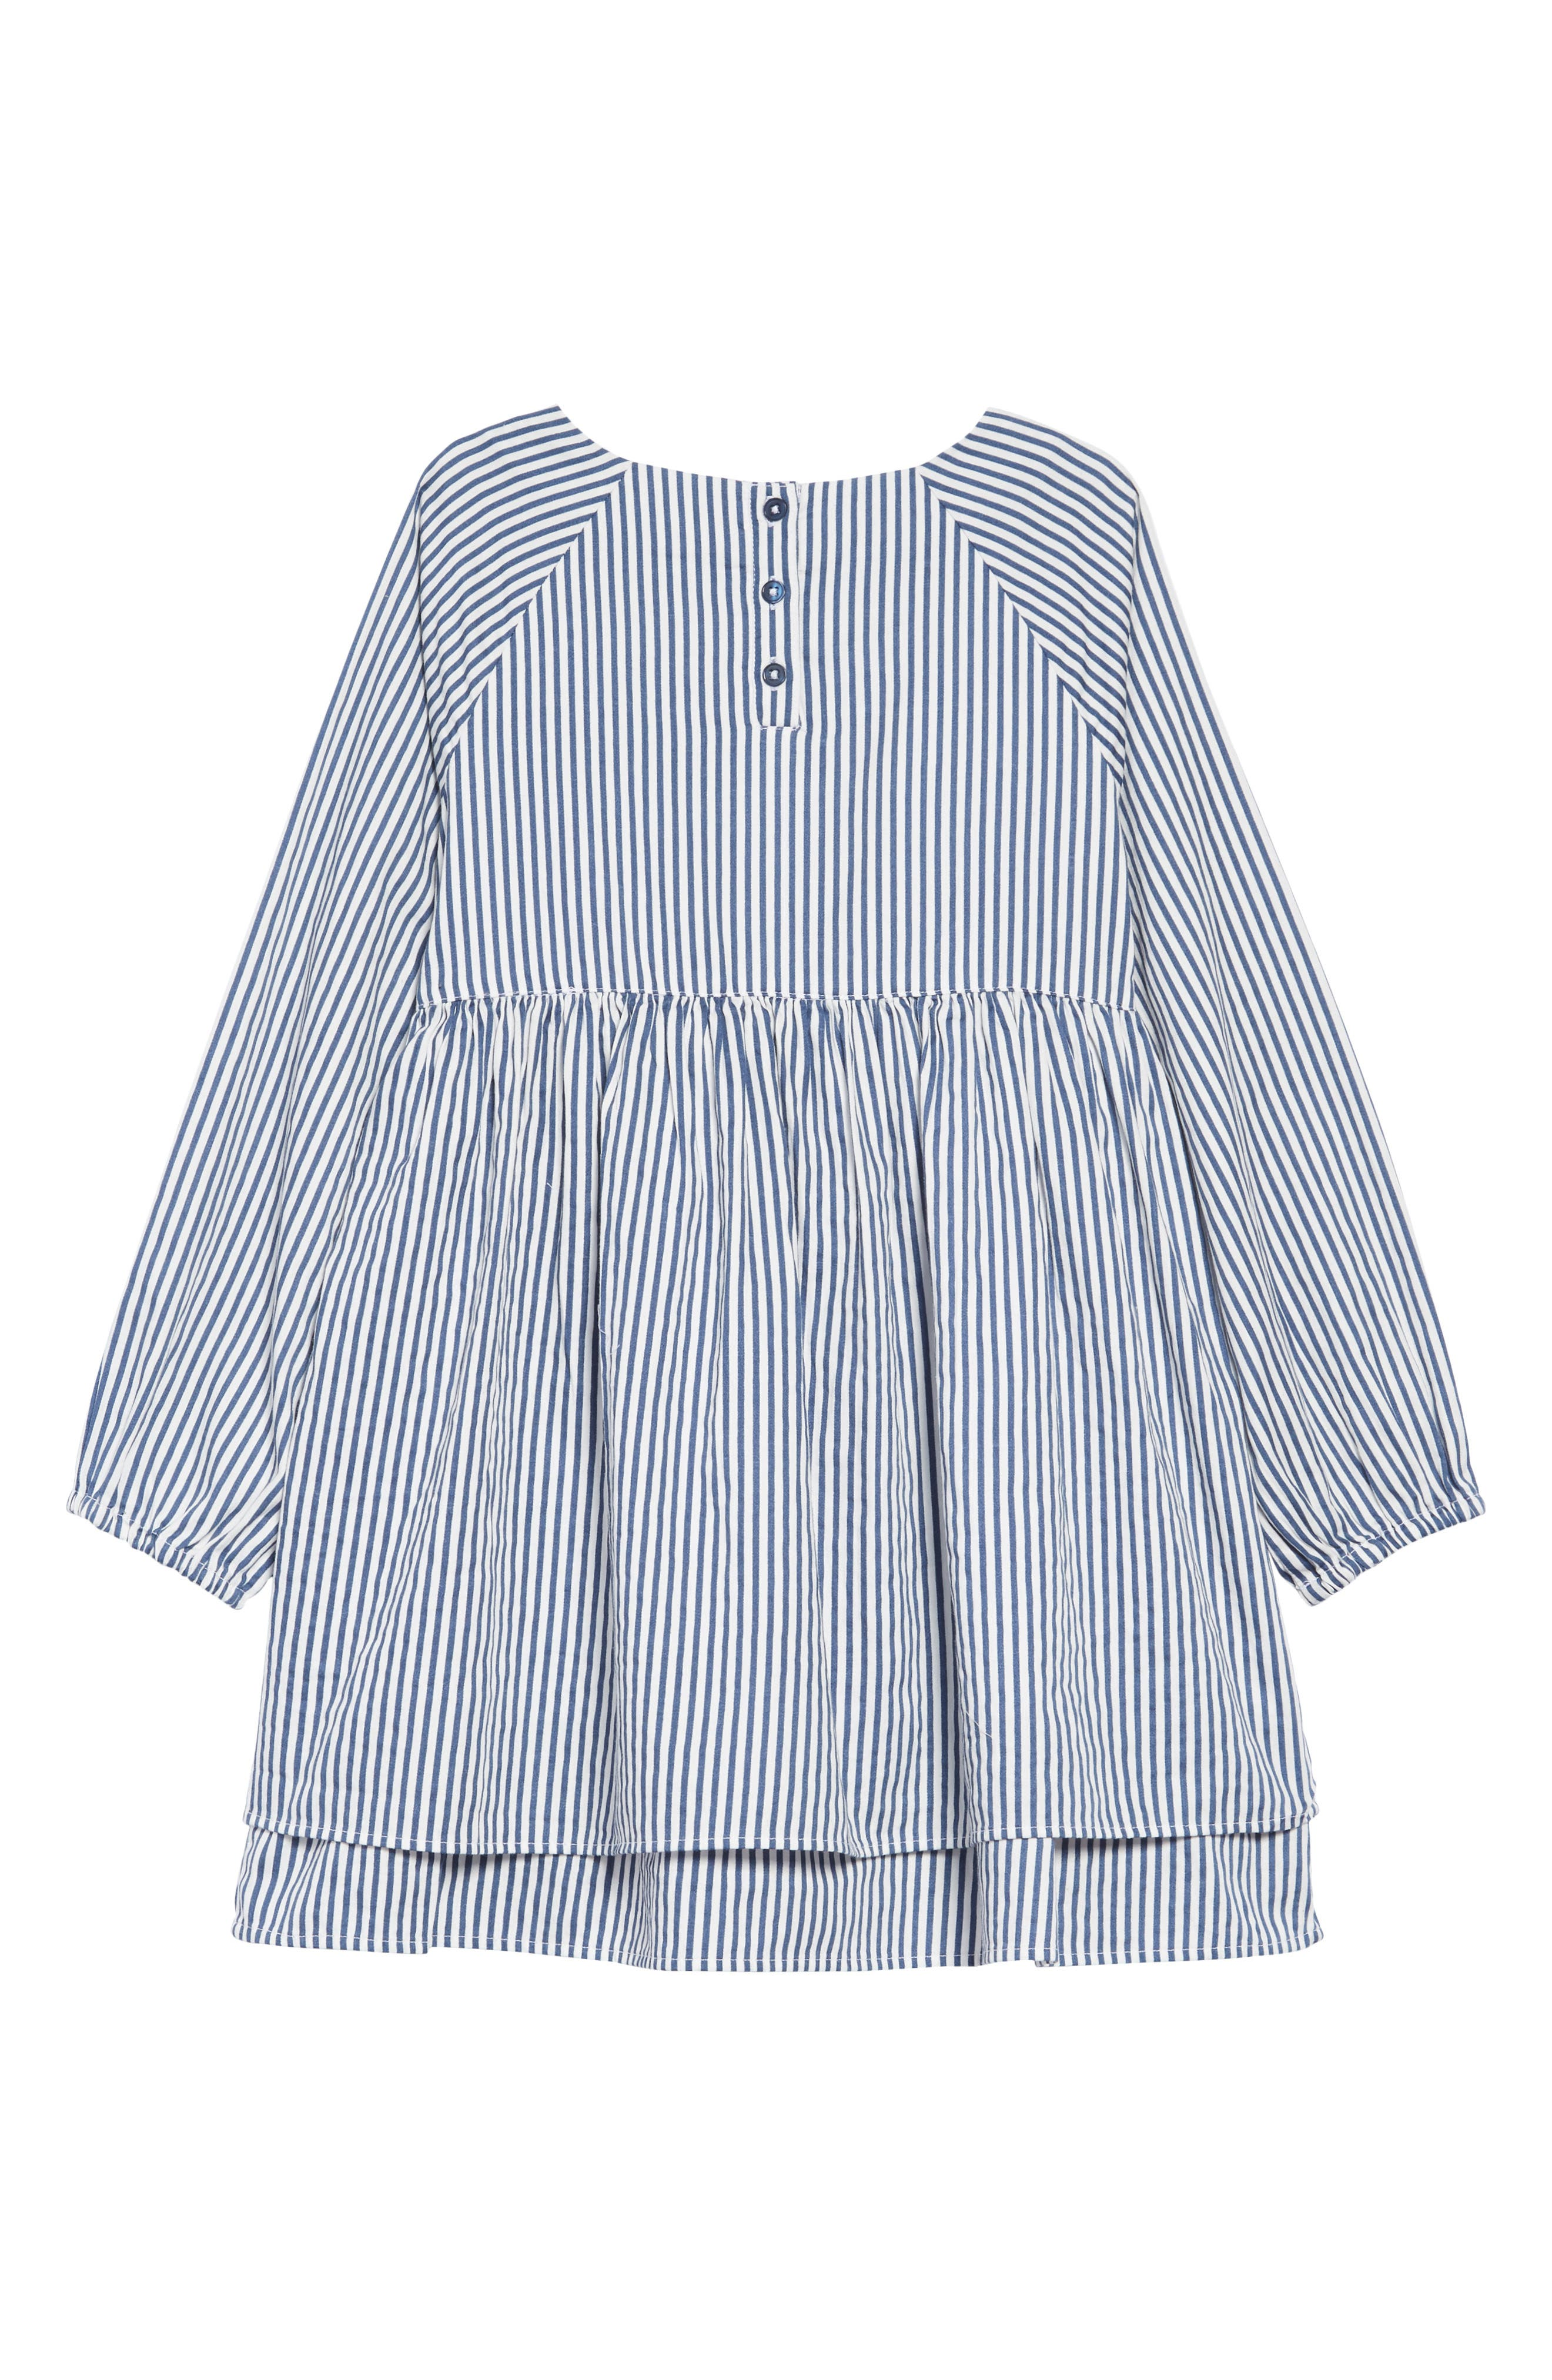 Woven Stripe Dress,                             Alternate thumbnail 2, color,                             WHITE- NAVY STRIPE